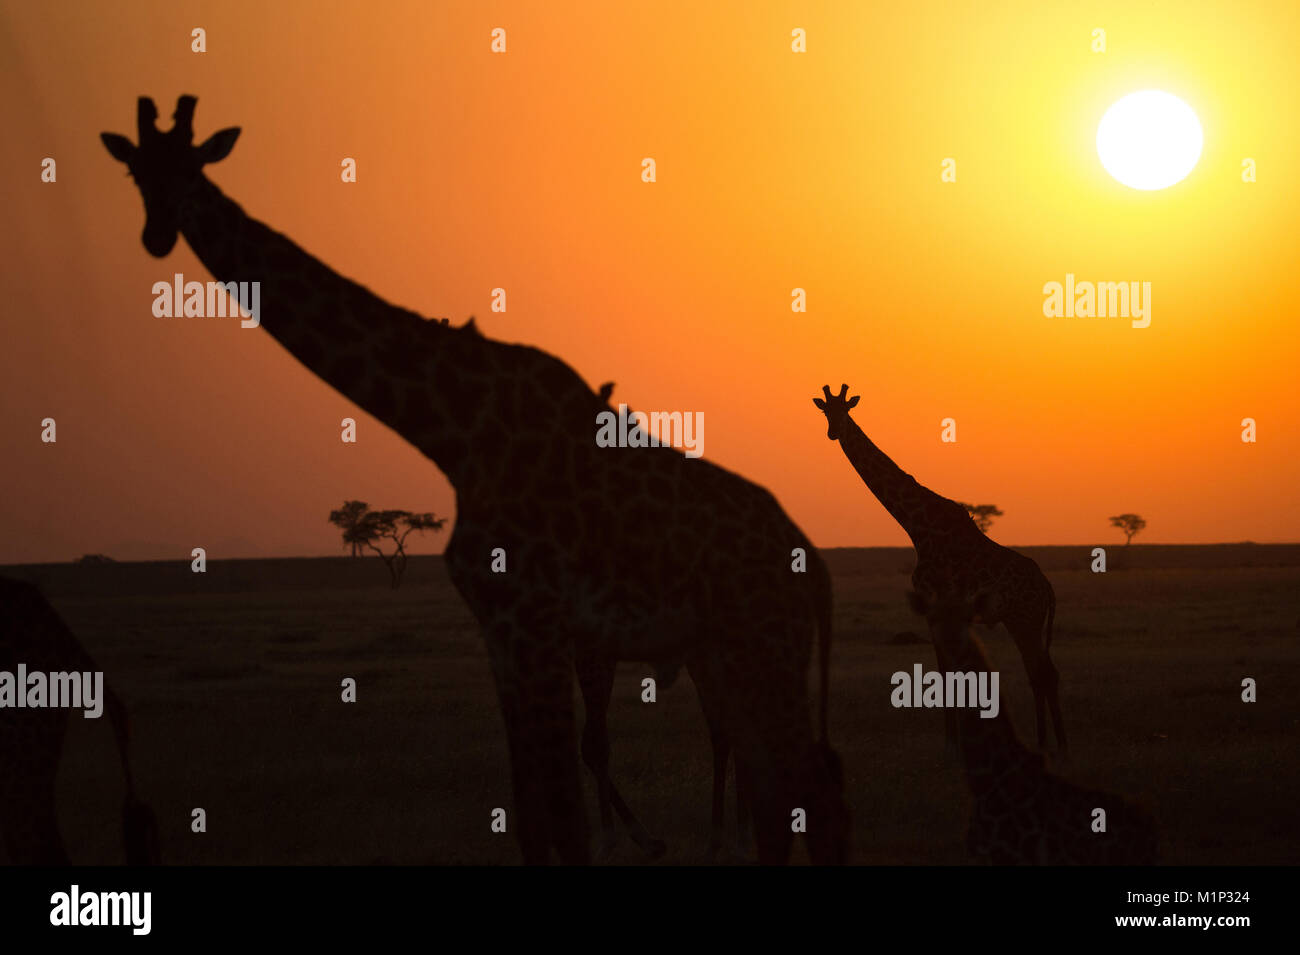 Silhouettes of giraffe (Giraffa camelopardalis) at sunset, Serengeti National Park, Tanzania, East Africa, Africa - Stock Image